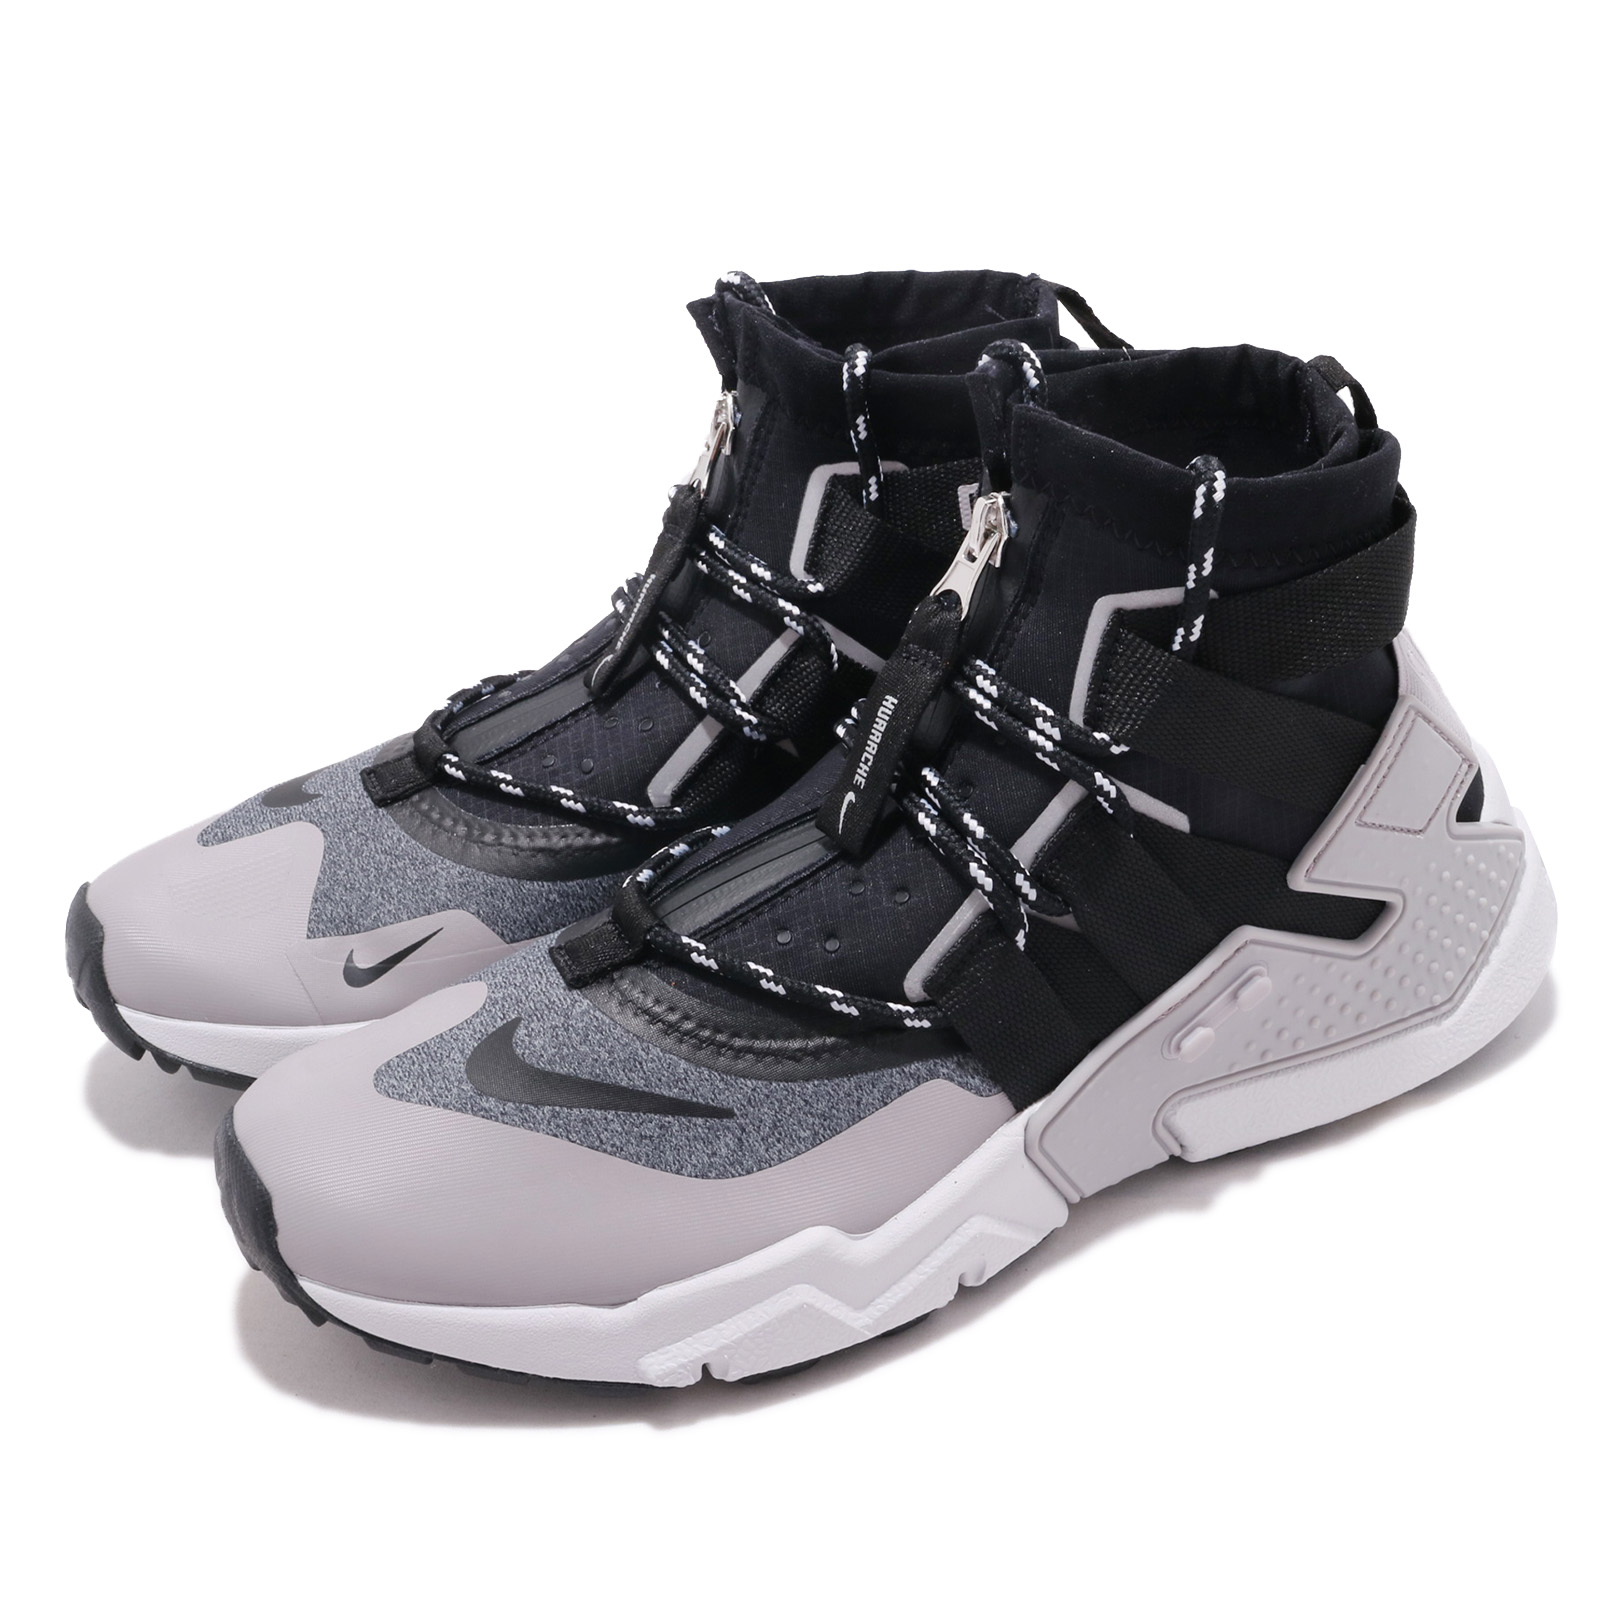 competitive price ad378 b6d1b Details about Nike Air Huarache Gripp Grey Black Zipper Men Running Shoes  Sneakers AO1730-004